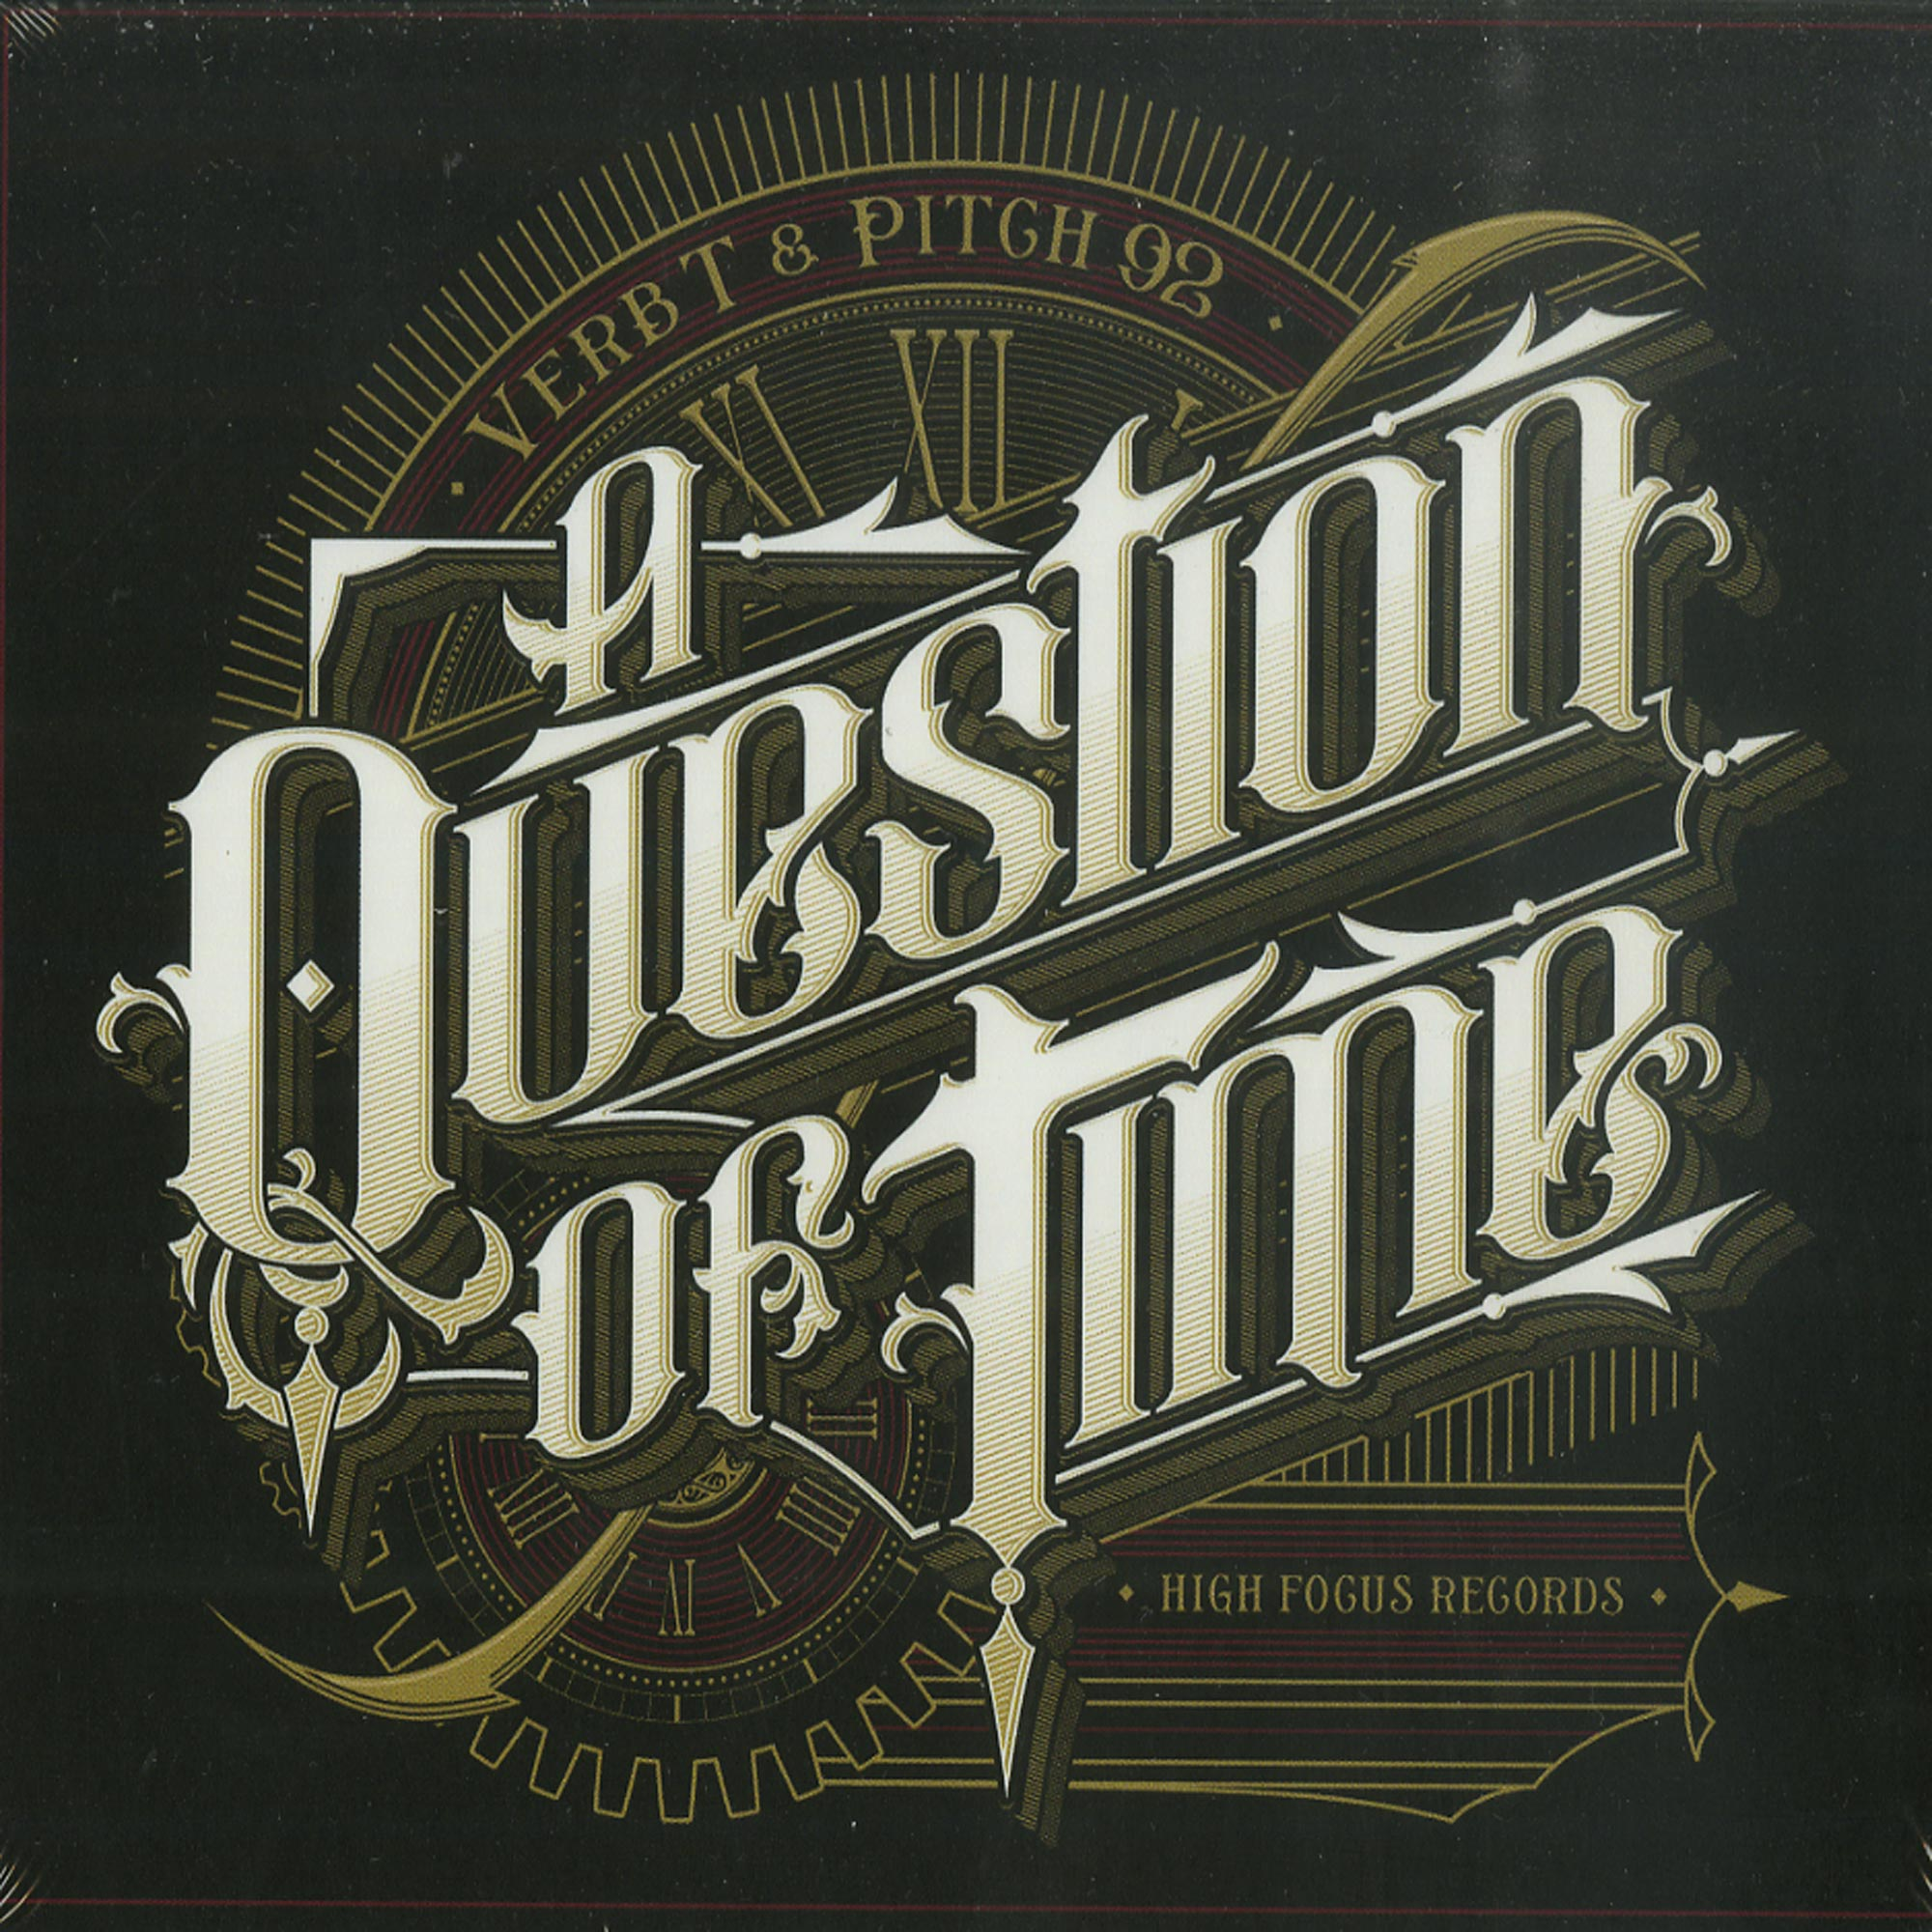 Verb T & Pitch 92 - A QUESTION OF TIME